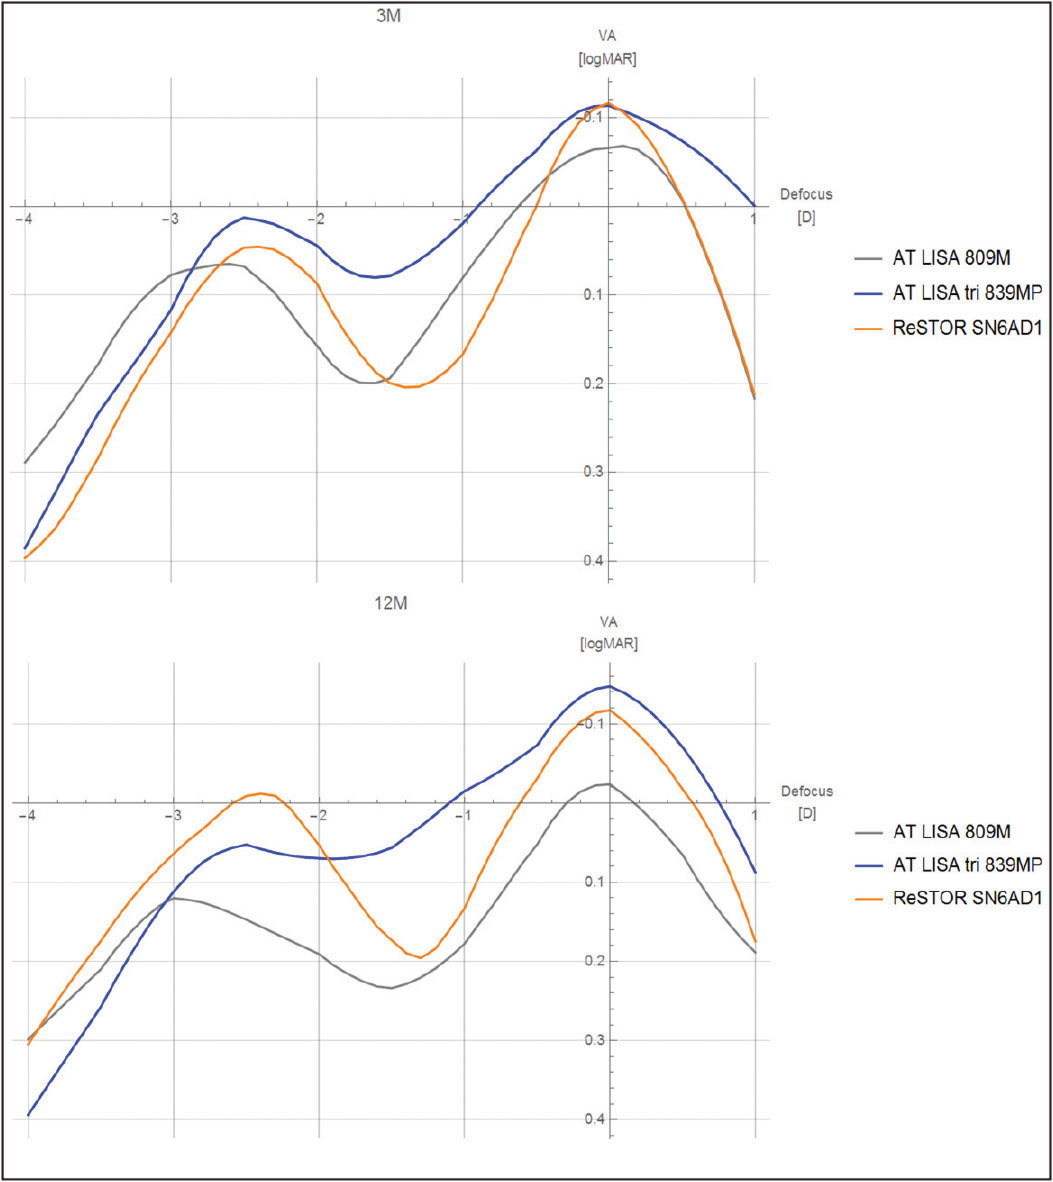 Mean binocular defocus curves for the AT LISA, AT LISA tri (Carl Zeiss Meditec, Jena, Germany), and ReSTOR SN6AD1 (Alcon Laboratories, Inc., Fort Worth, TX) groups at 3 (top) and 12 (bottom) months postoperatively. D = diopters; VA = visual acuity